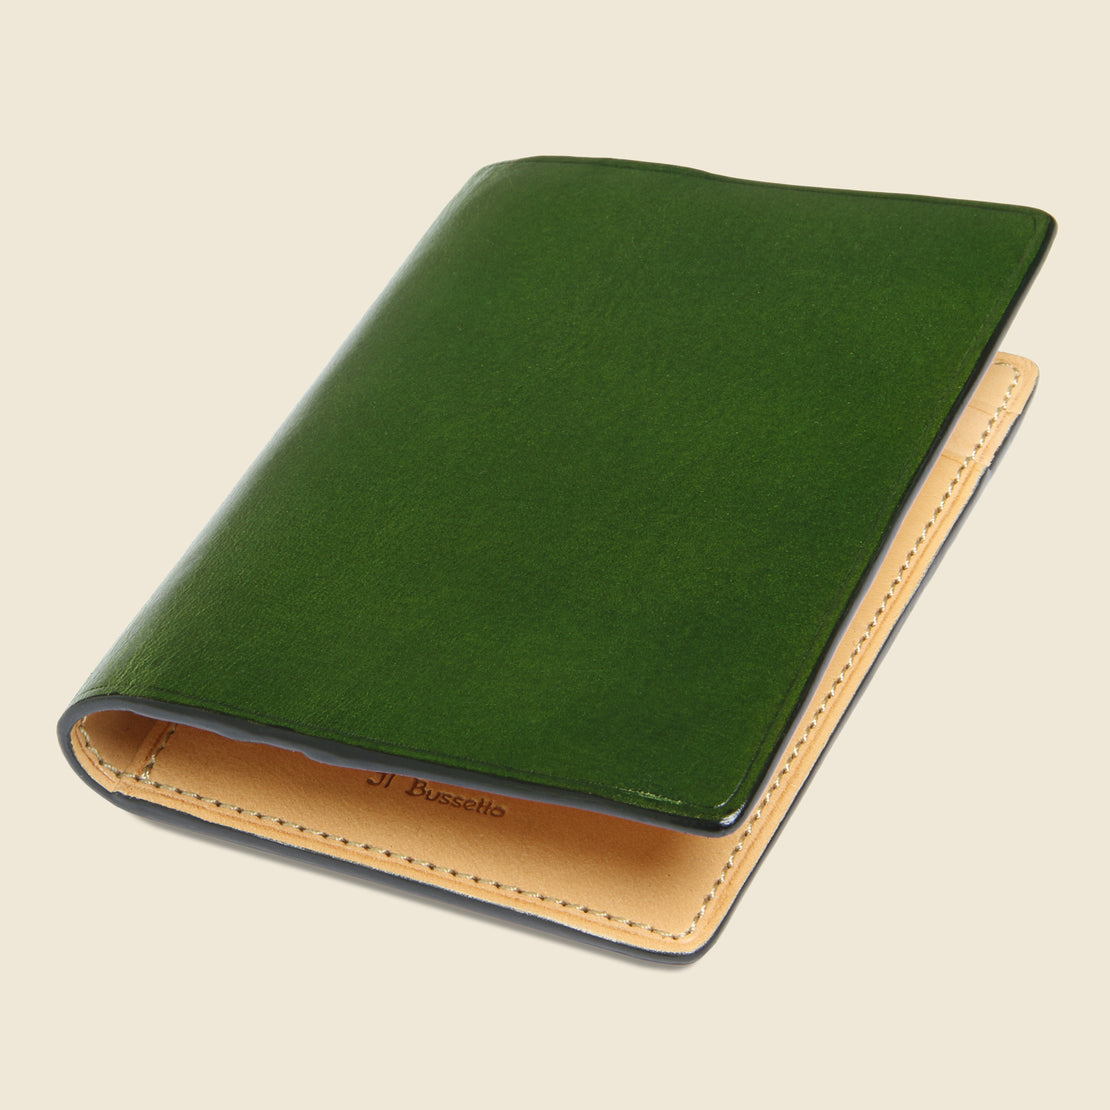 Bi-Fold Card Case - Green - Il Bussetto - STAG Provisions - Accessories - Wallets